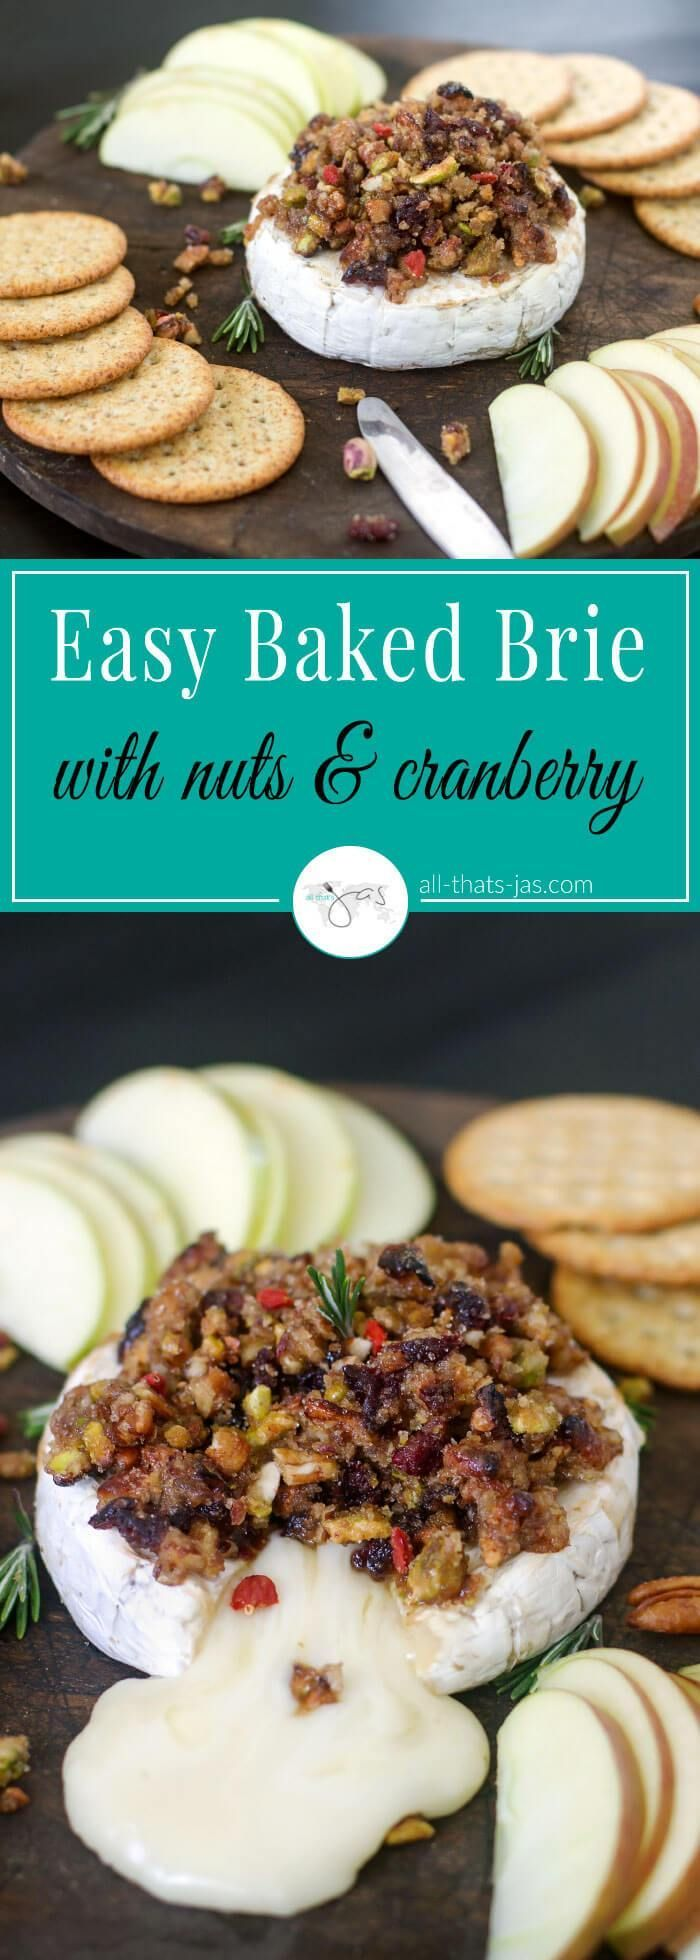 Easy appetizer perfect for holidays or snacking, this oven baked brie is topped with glazed nuts and dried cranberry and served with apple slices and crackers. | allthatsjas.com | #briecheese #bakedbrie #appetizer #partyfood #holidayfood #glutenfree #nuts #Cranberry #snacks #cheesespread